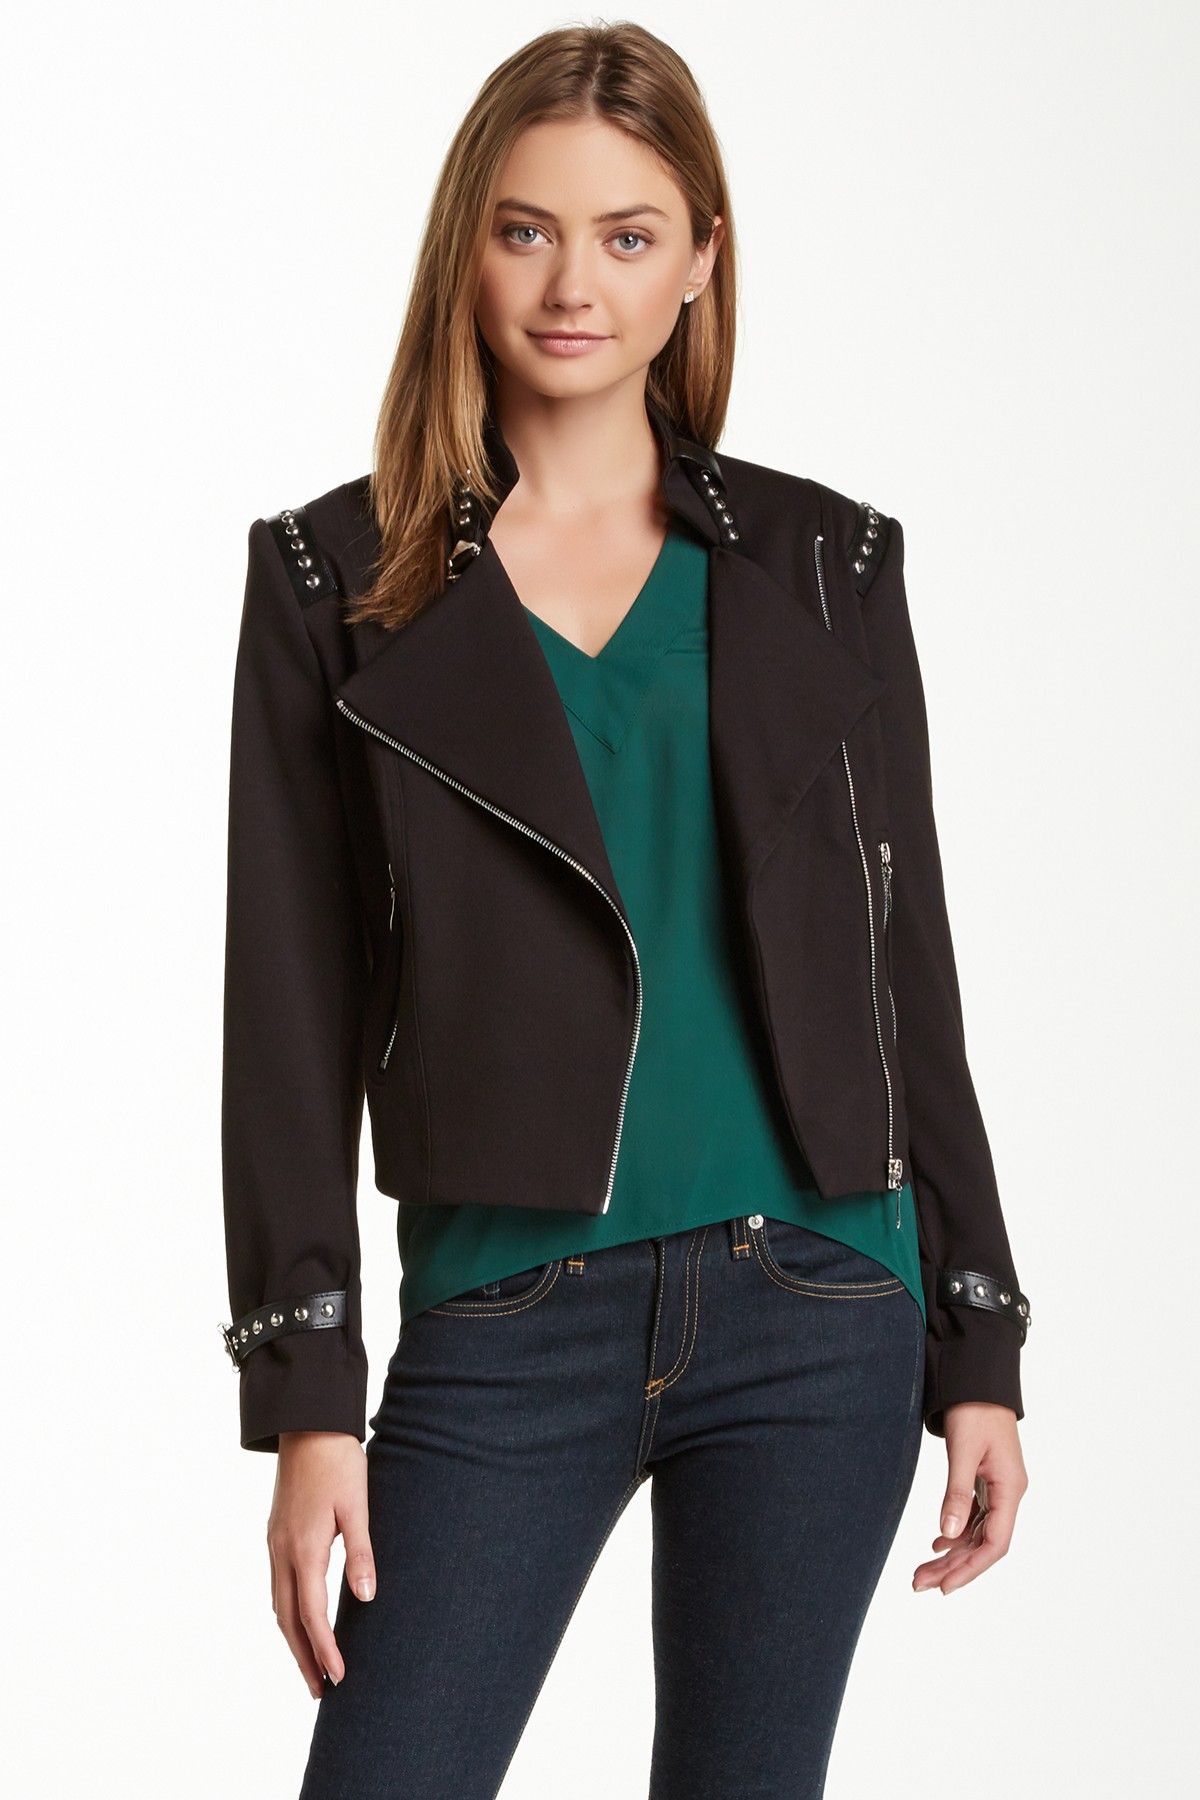 Insight Buckle and Stud Jacket Studded jacket, Clothes